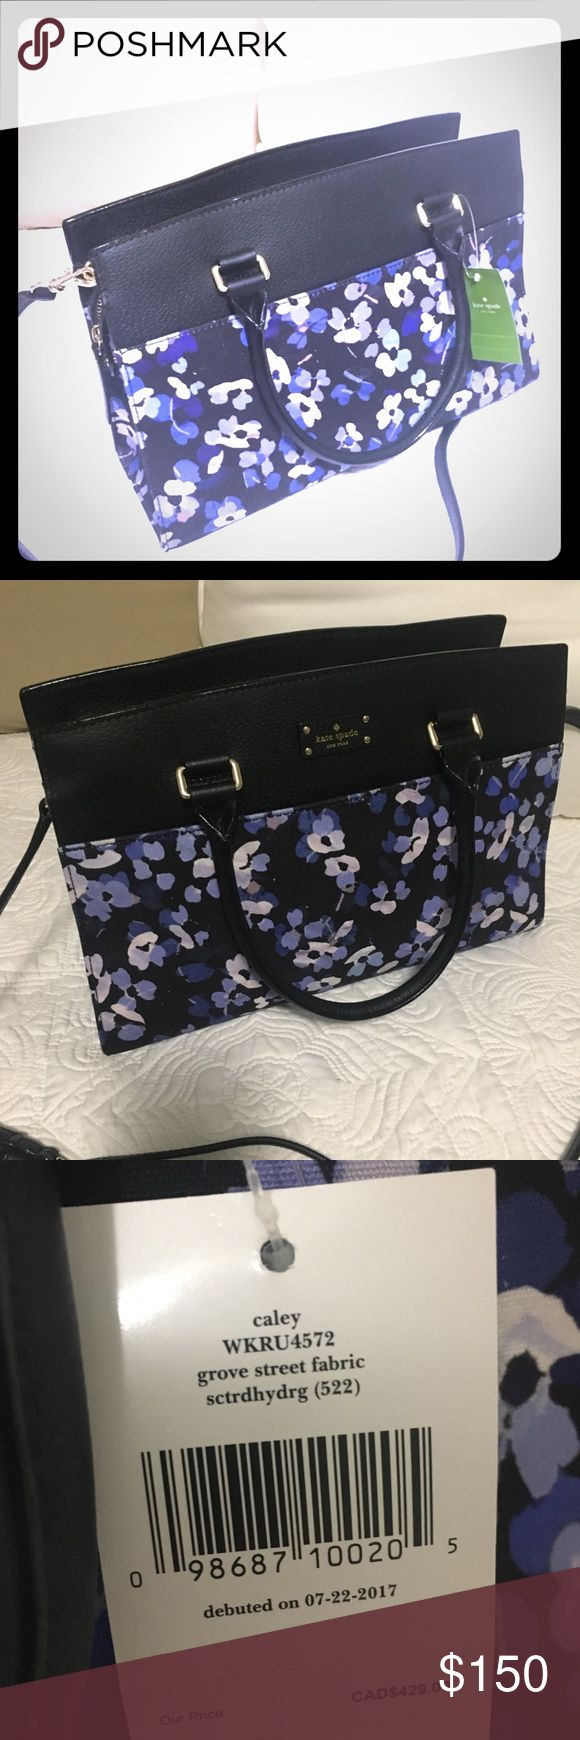 """NWT Kate Spade Grove Street Hydrangea Satchel Brand new with tags Kate Spade Grove Street (debuted 7-2017)   • Brand: Kate Spade  • Caley Grove Street Fabric  • Saffiano leather/fabric  • 20""""crossbody strap/detachable  • 14 kt gold-plated hardware  • dual 6"""" handles  • Kate Spade logo on front  • Large slip pocket on front  • Secure zippered top  Retails $ 359.00 kate spade Bags Satchels"""